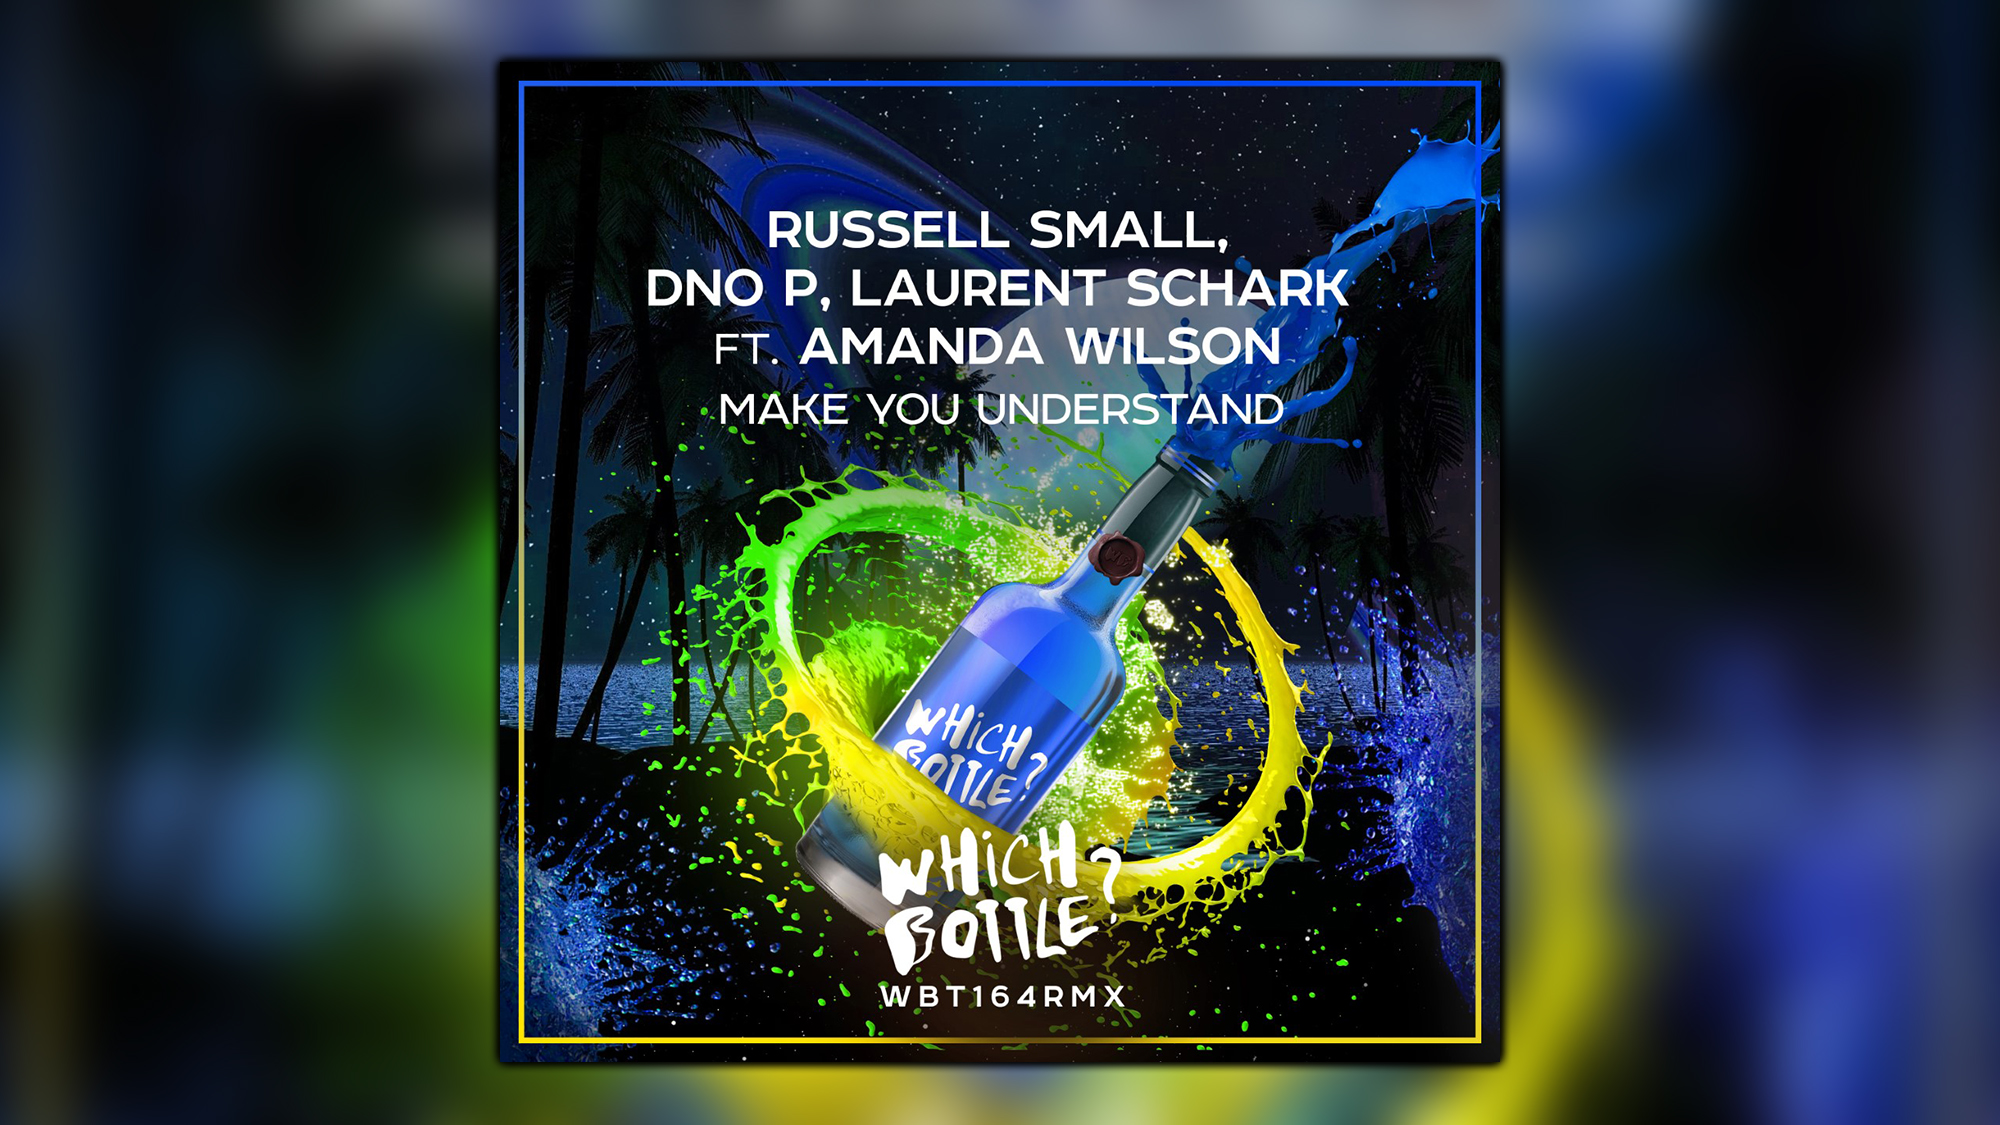 Russell Small, DNO P, Laurent Schark & Amanda Wilson Team Up For Epic Collab!